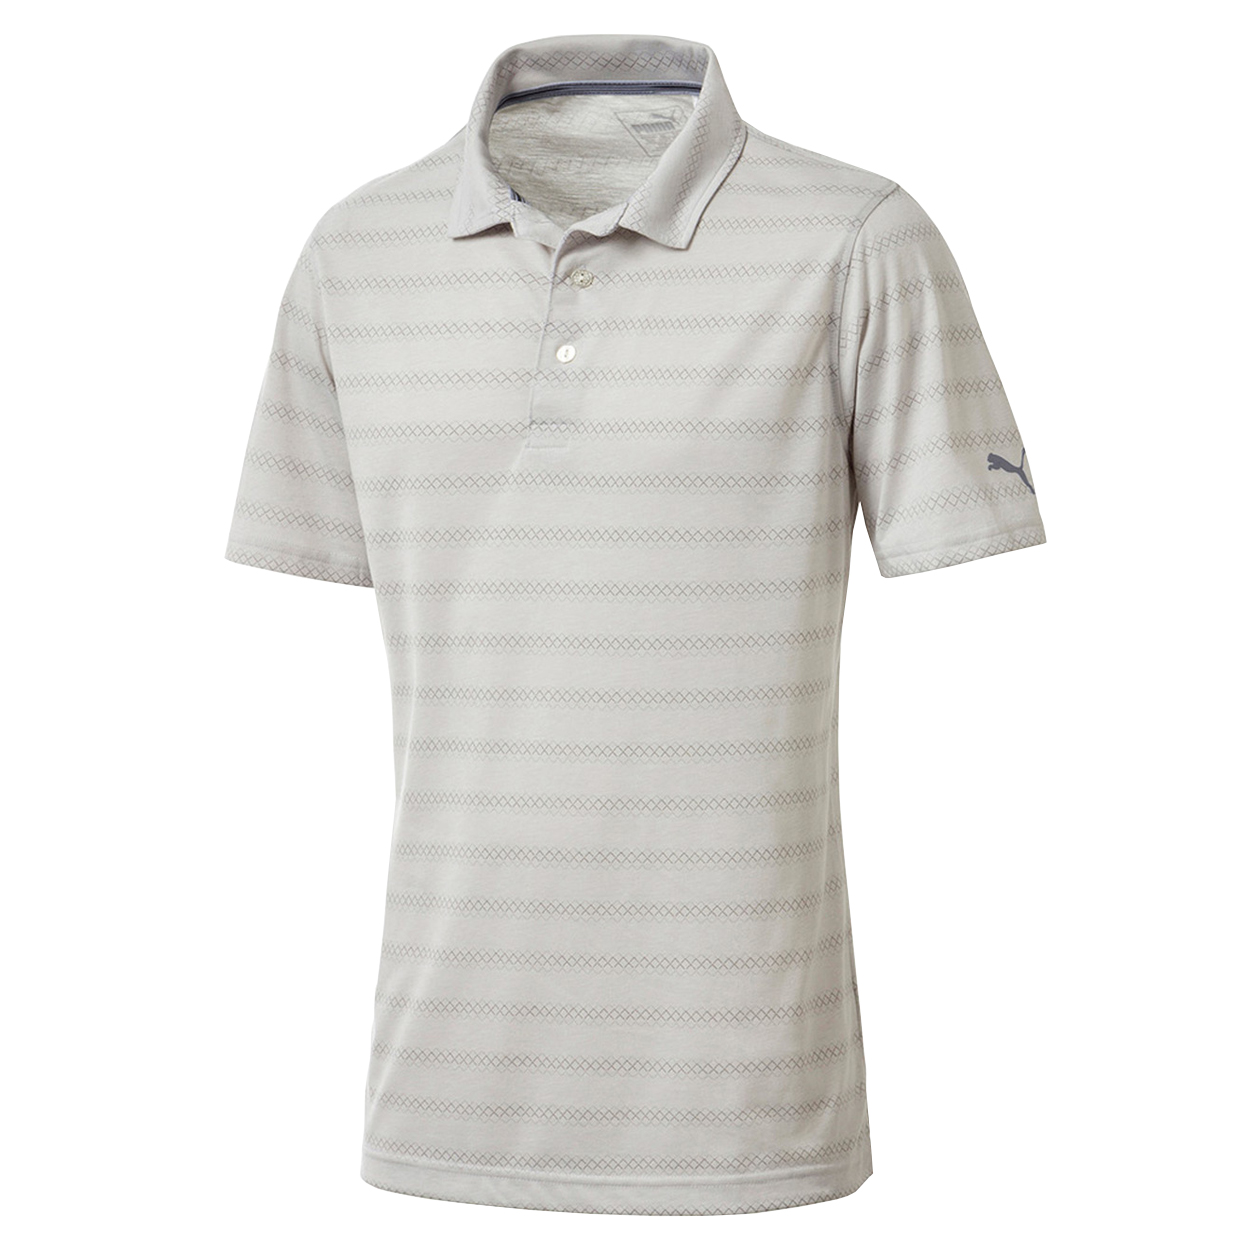 Pumapolo 3401 gry front 0719